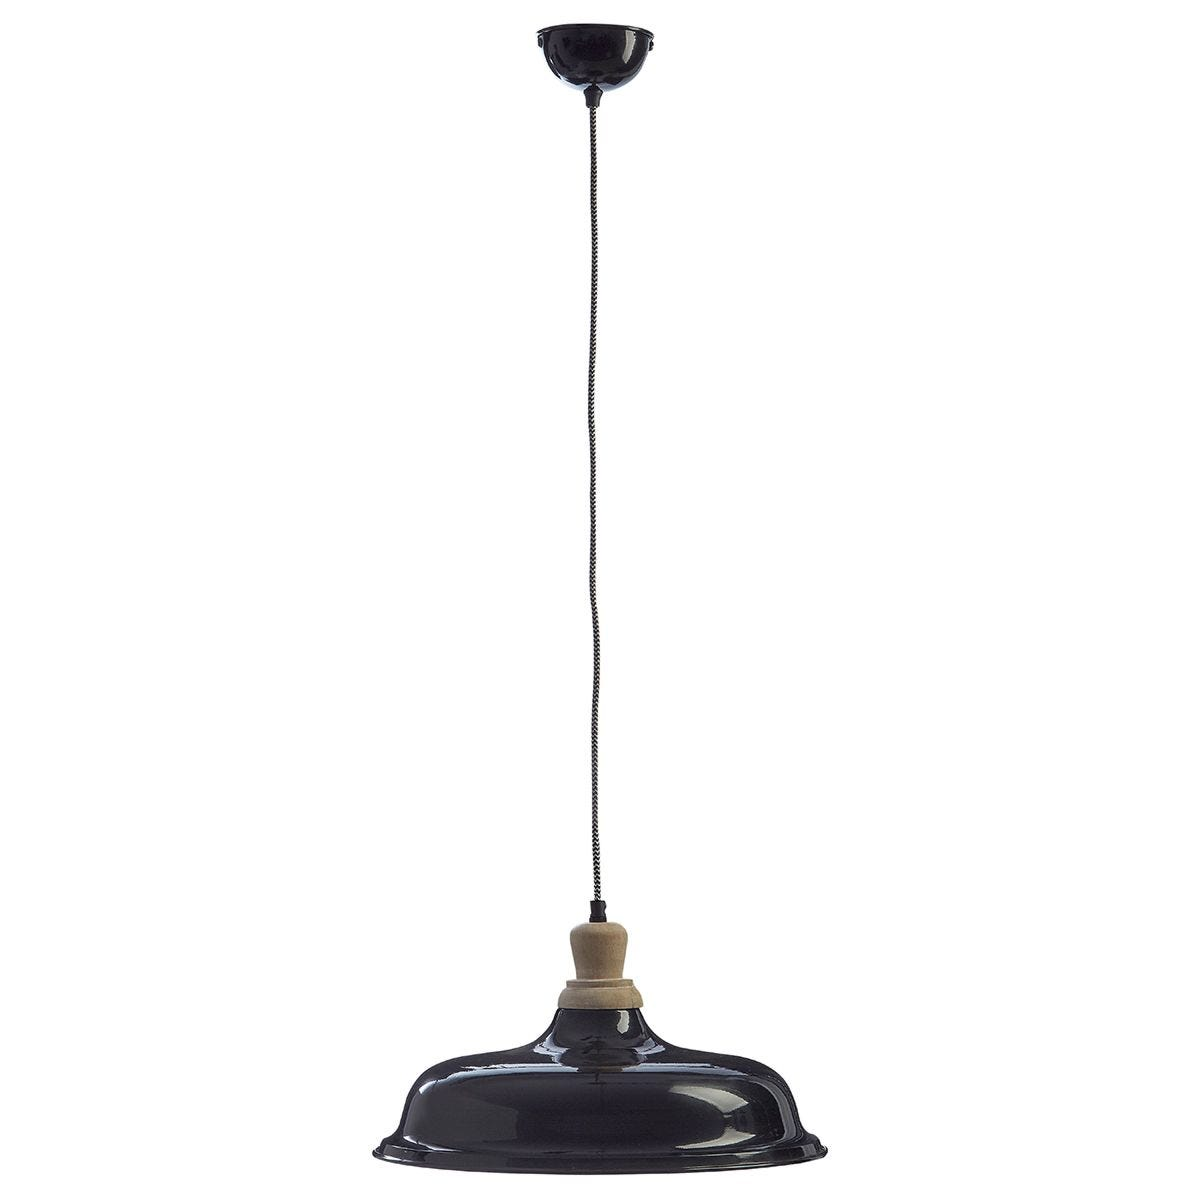 Premier Housewares Oslo Small Pendant Light in Iron/Wood - Black